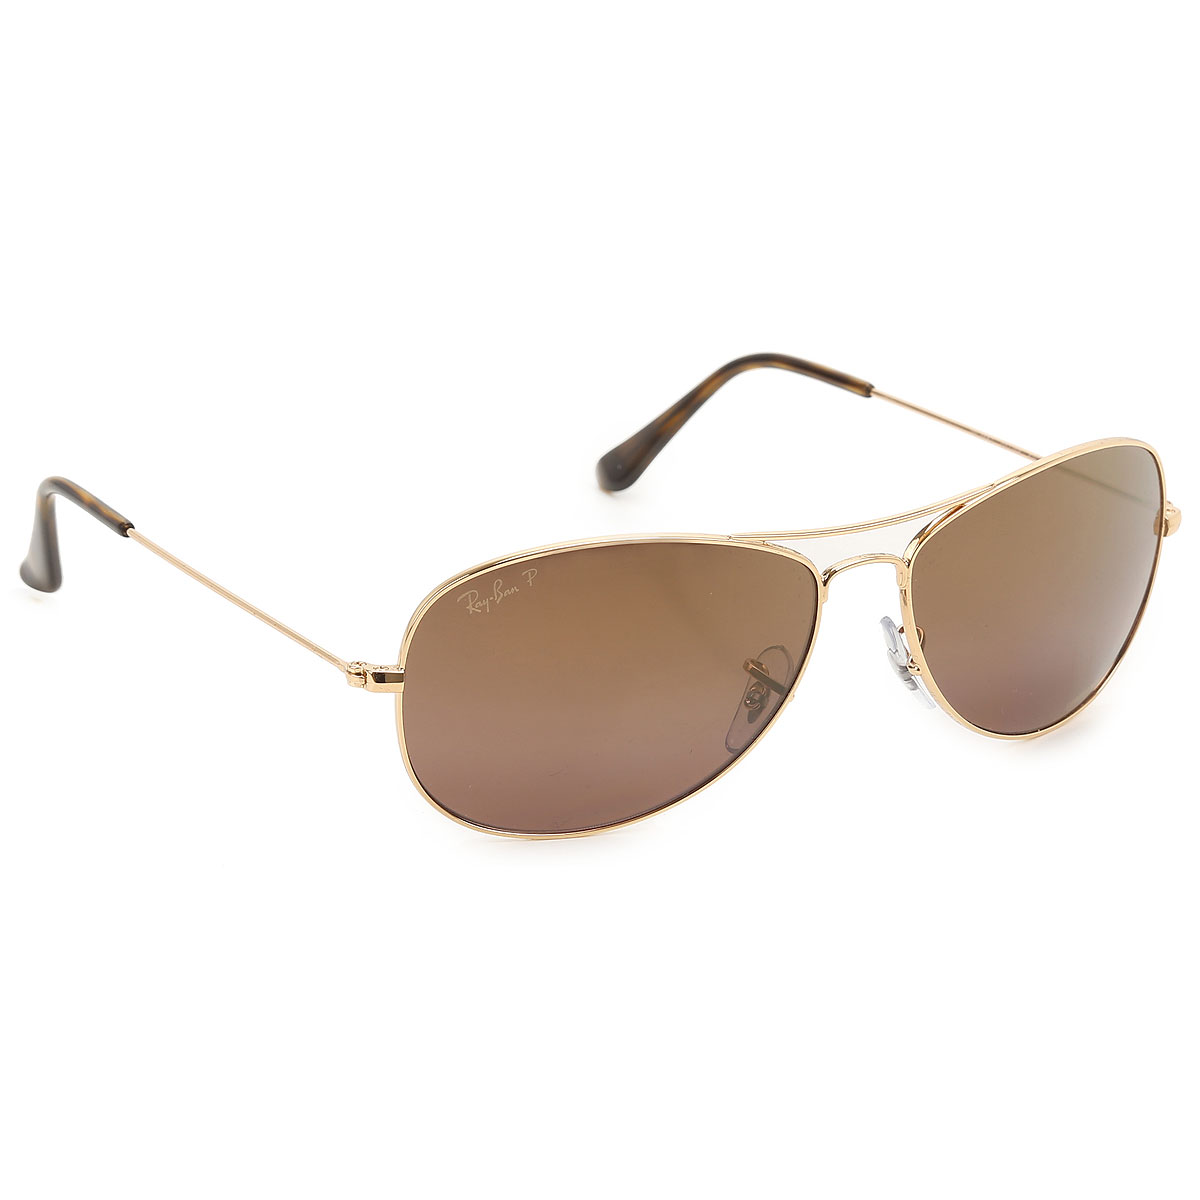 Image of Ray Ban Sunglasses On Sale, Gold, 2017